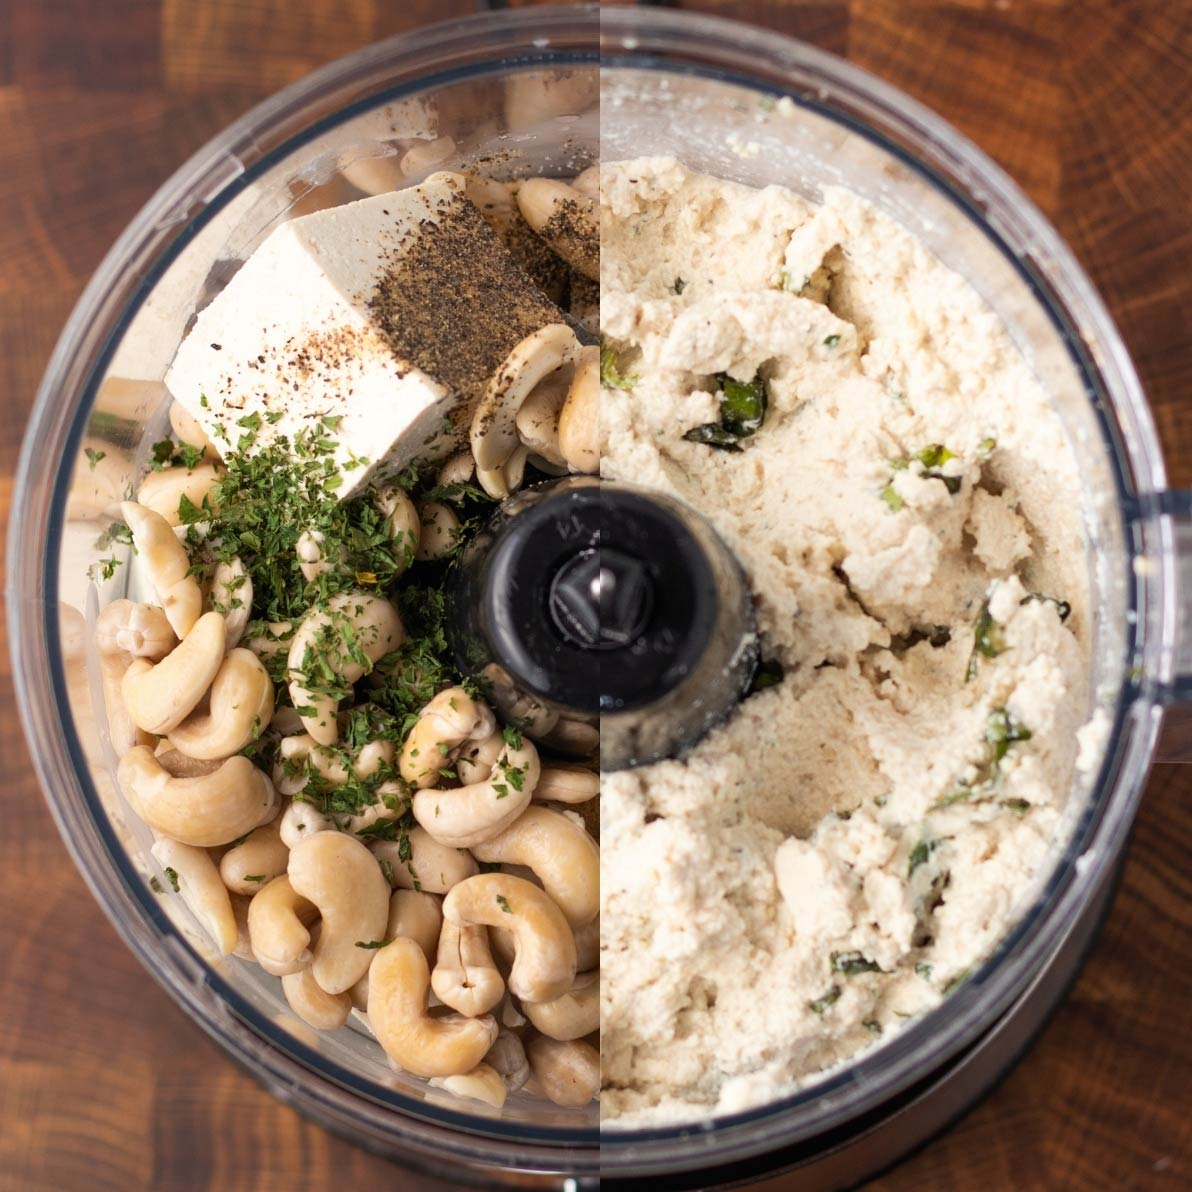 overhead of a food processor with half of the unblended ingredients and half creamy blended vegan ricotta.